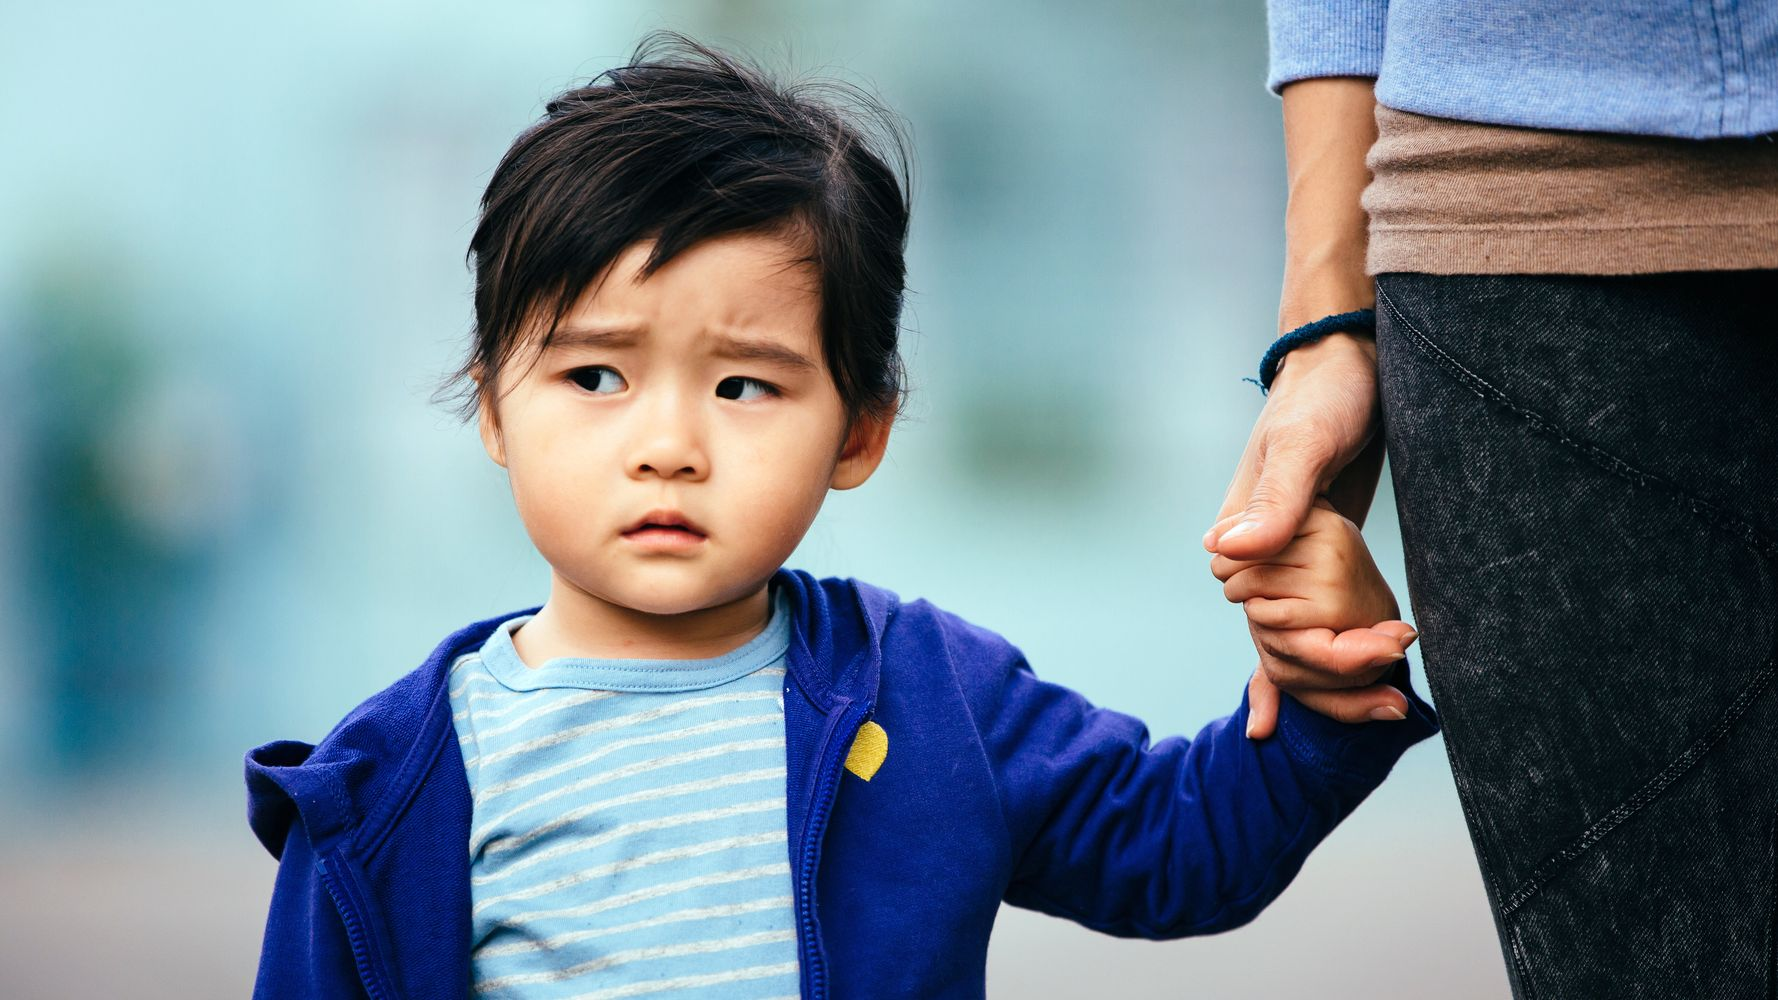 www.huffpost.com: How to Talk to Kids About Anti-Asian Violence And Racism